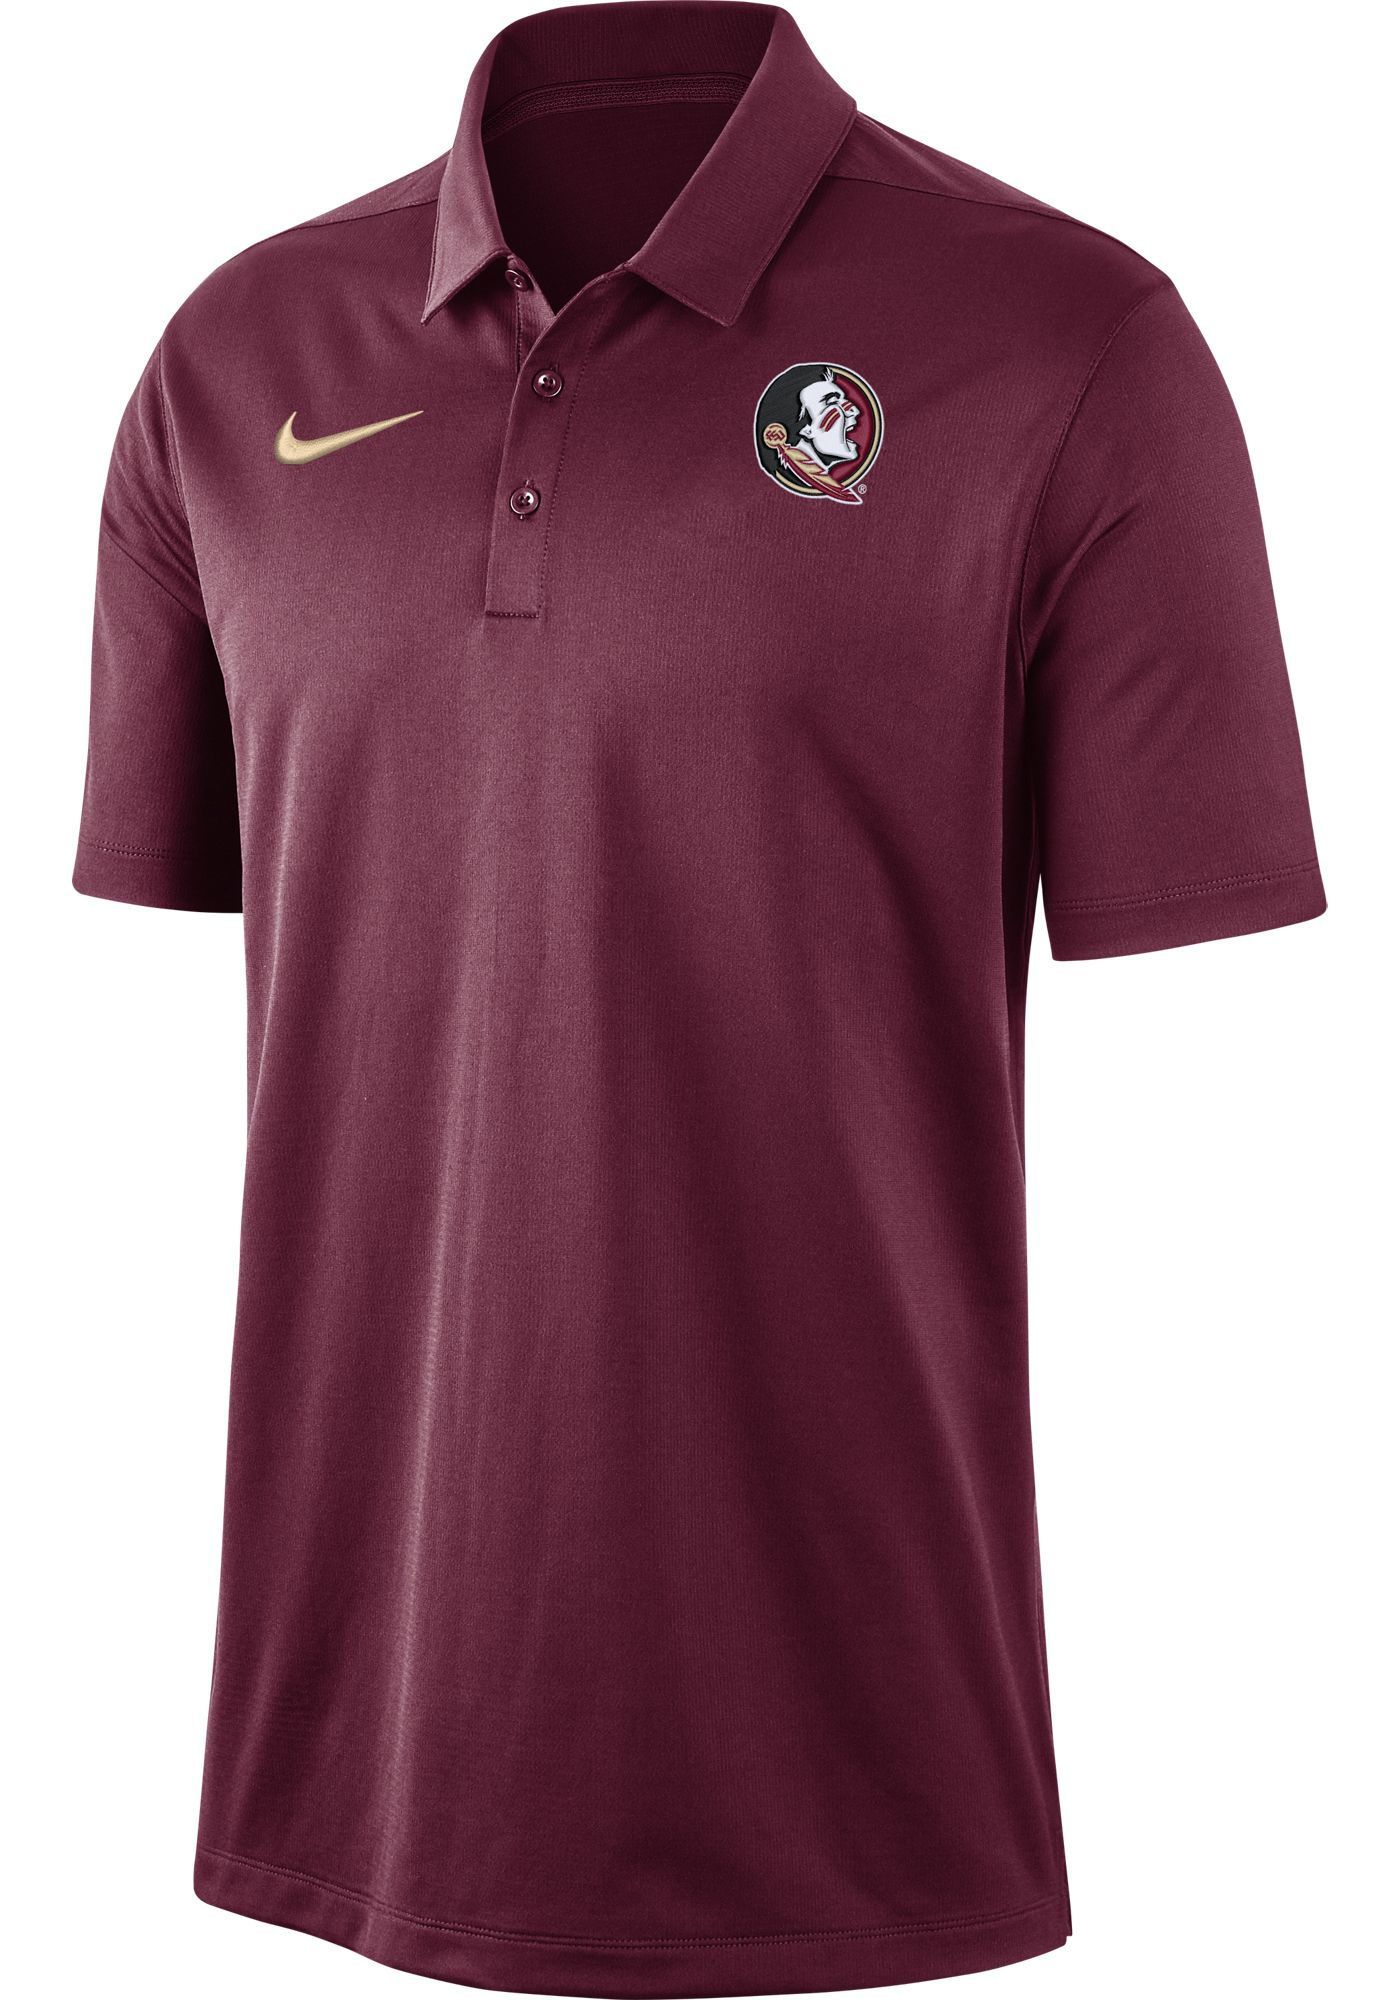 Nike Men's Florida State Seminoles Garnet Dri-FIT Franchise Polo